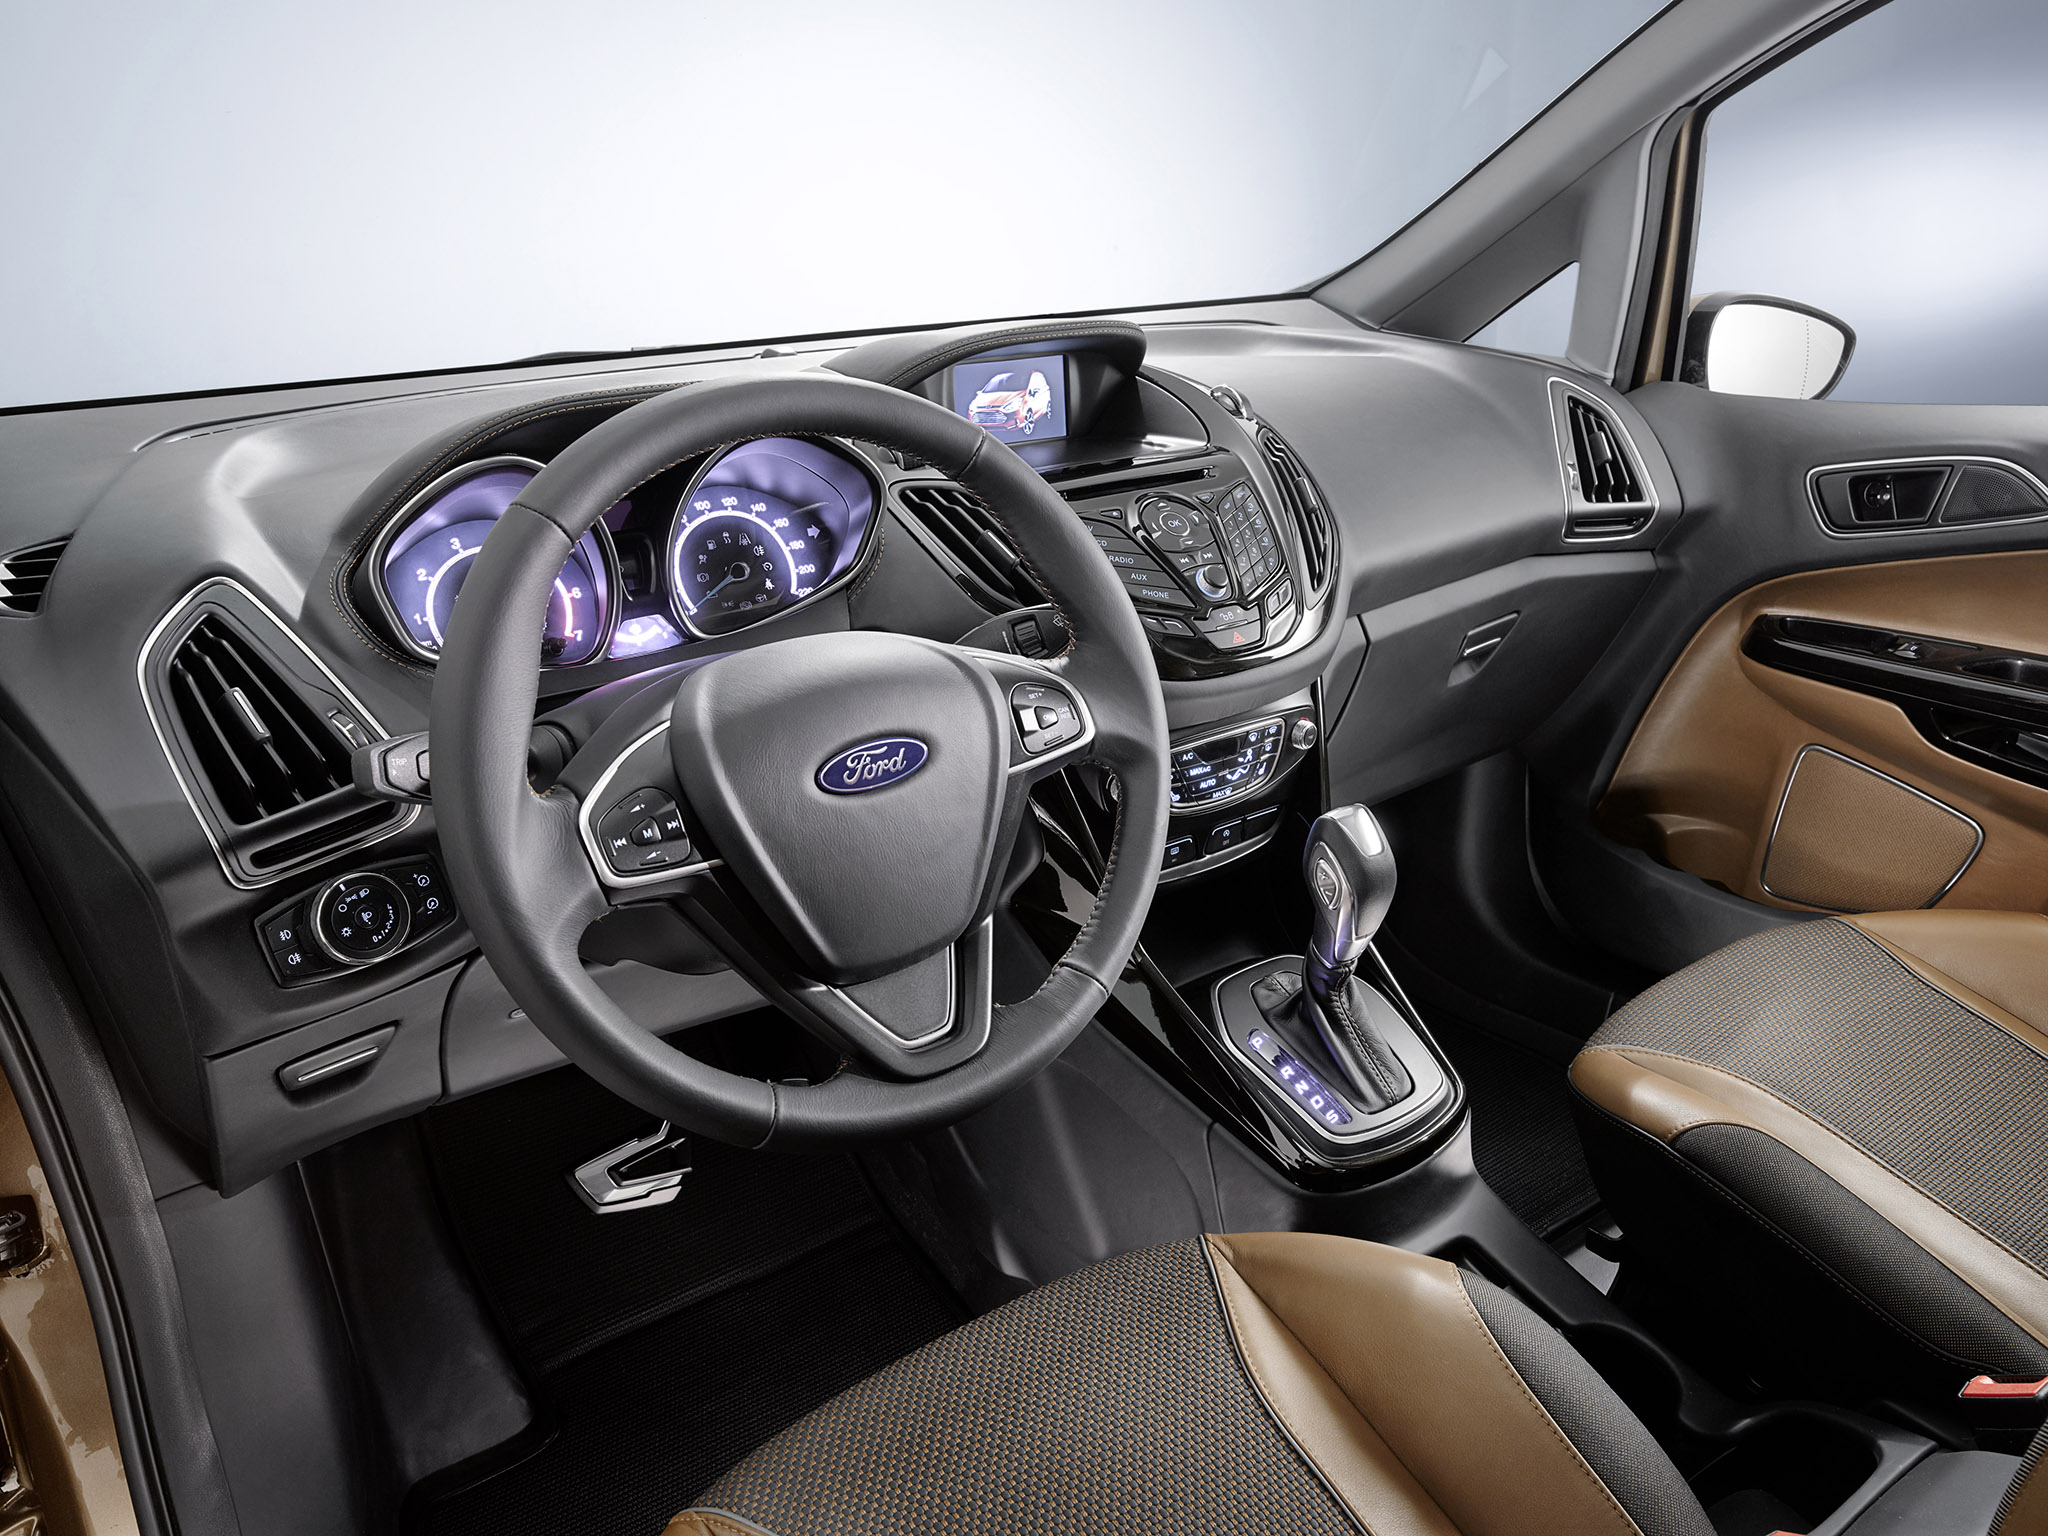 2019 Ford B MAX Concept photo - 1